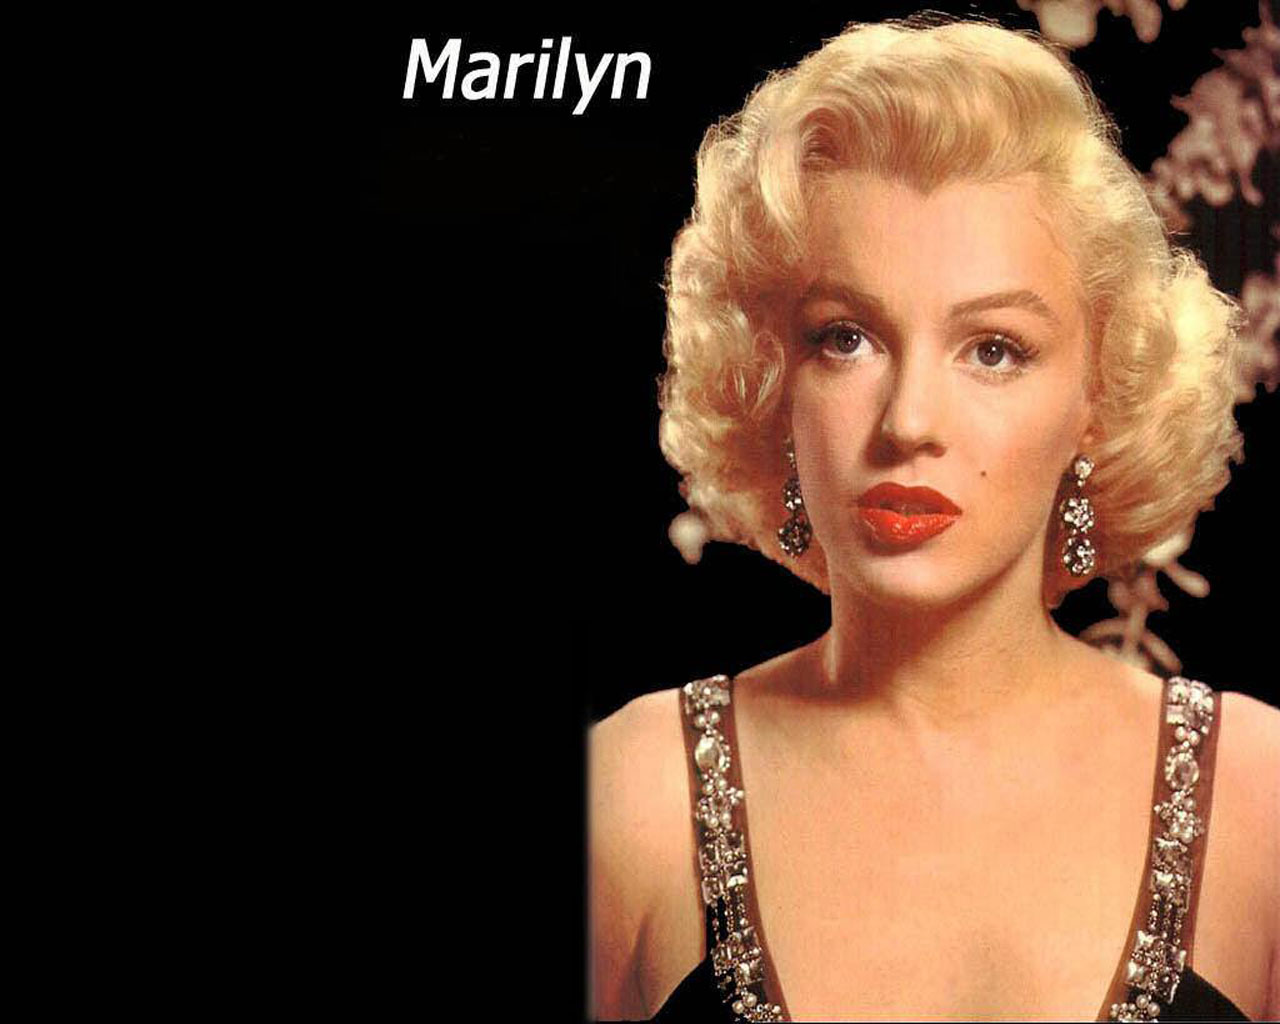 chatter busy marilyn monroe wallpapers